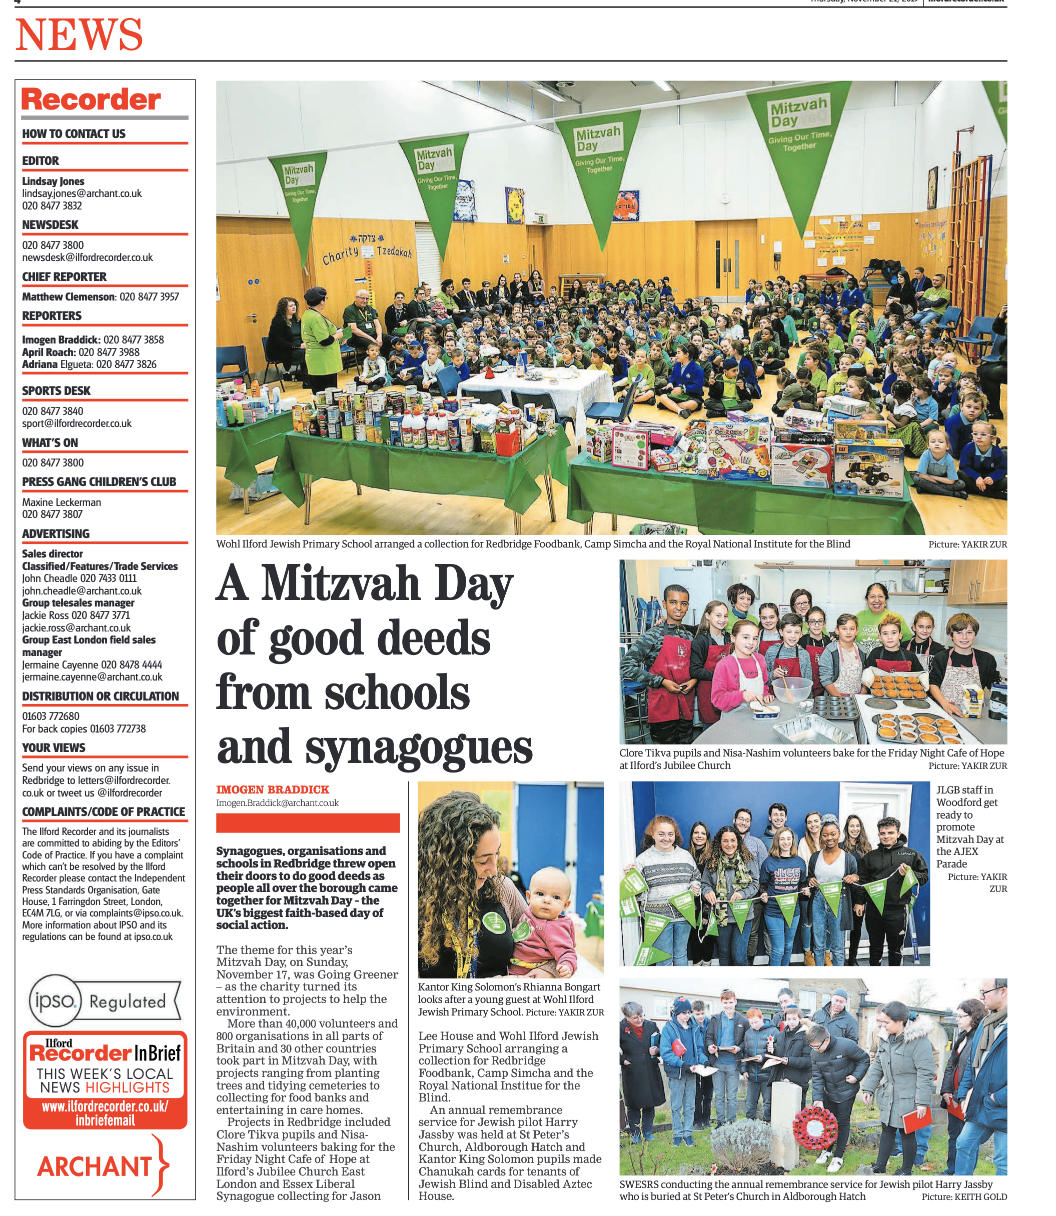 Mitzvah Day special in the Ilford Recorder